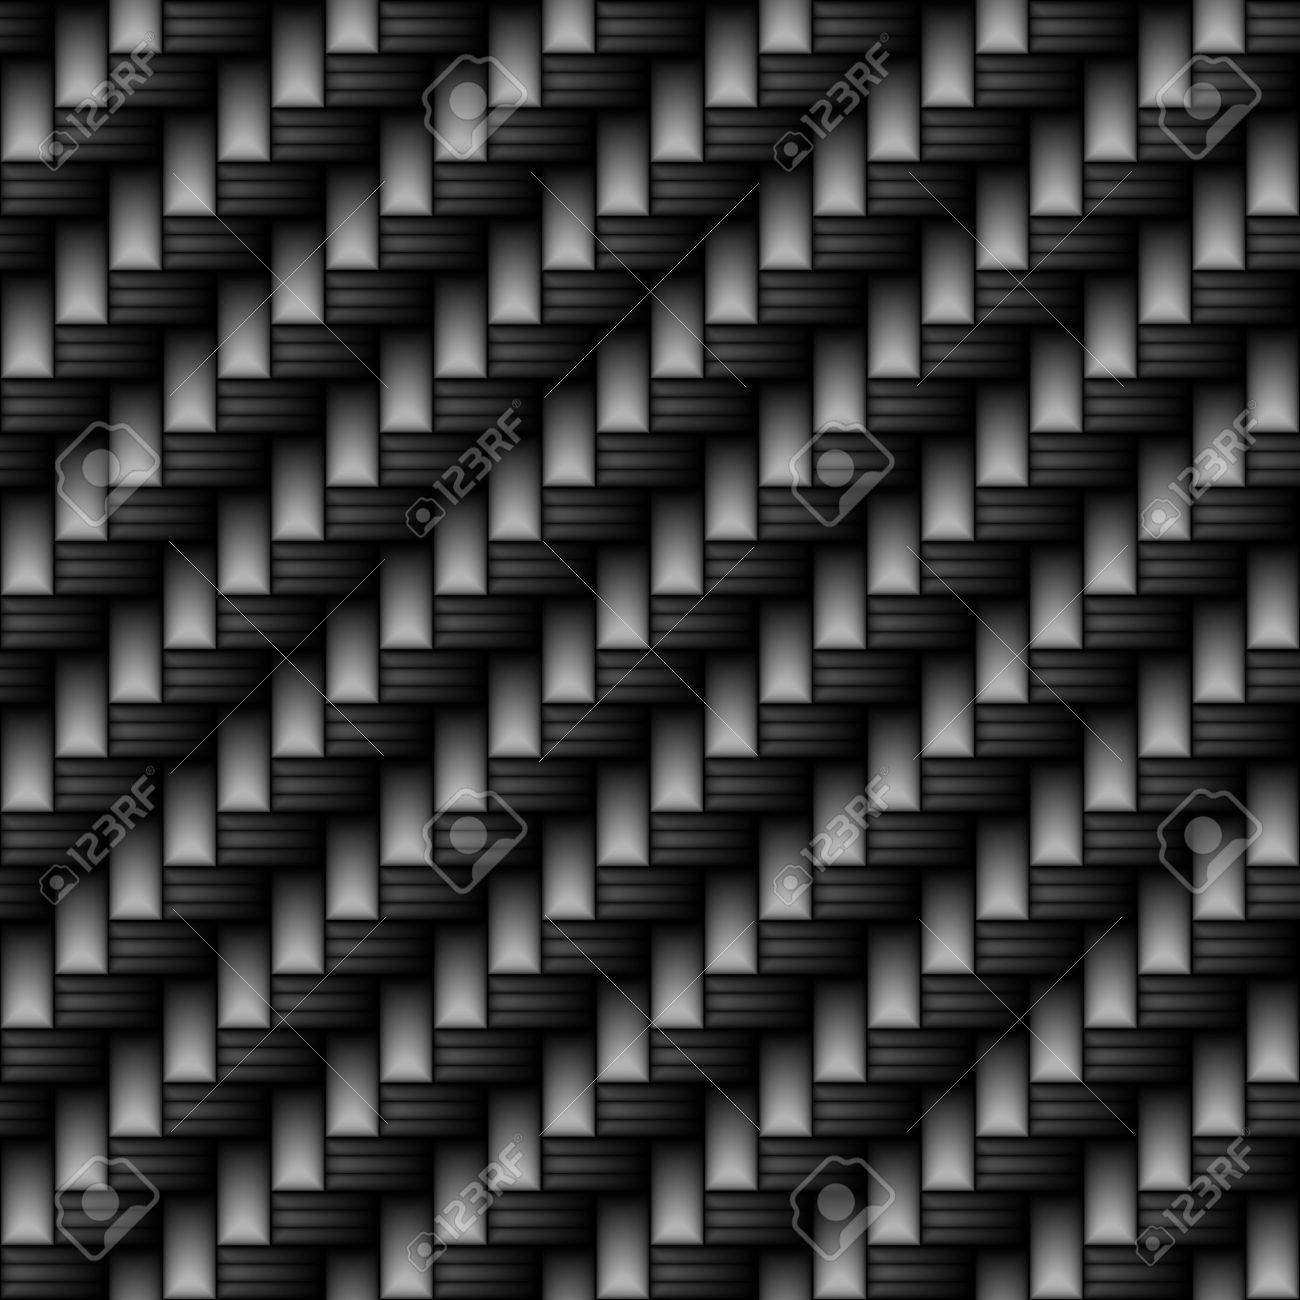 Black carbon fiber material that works great as a pattern.  It tiles seamlessly in any direction. Stock Photo - 6053452